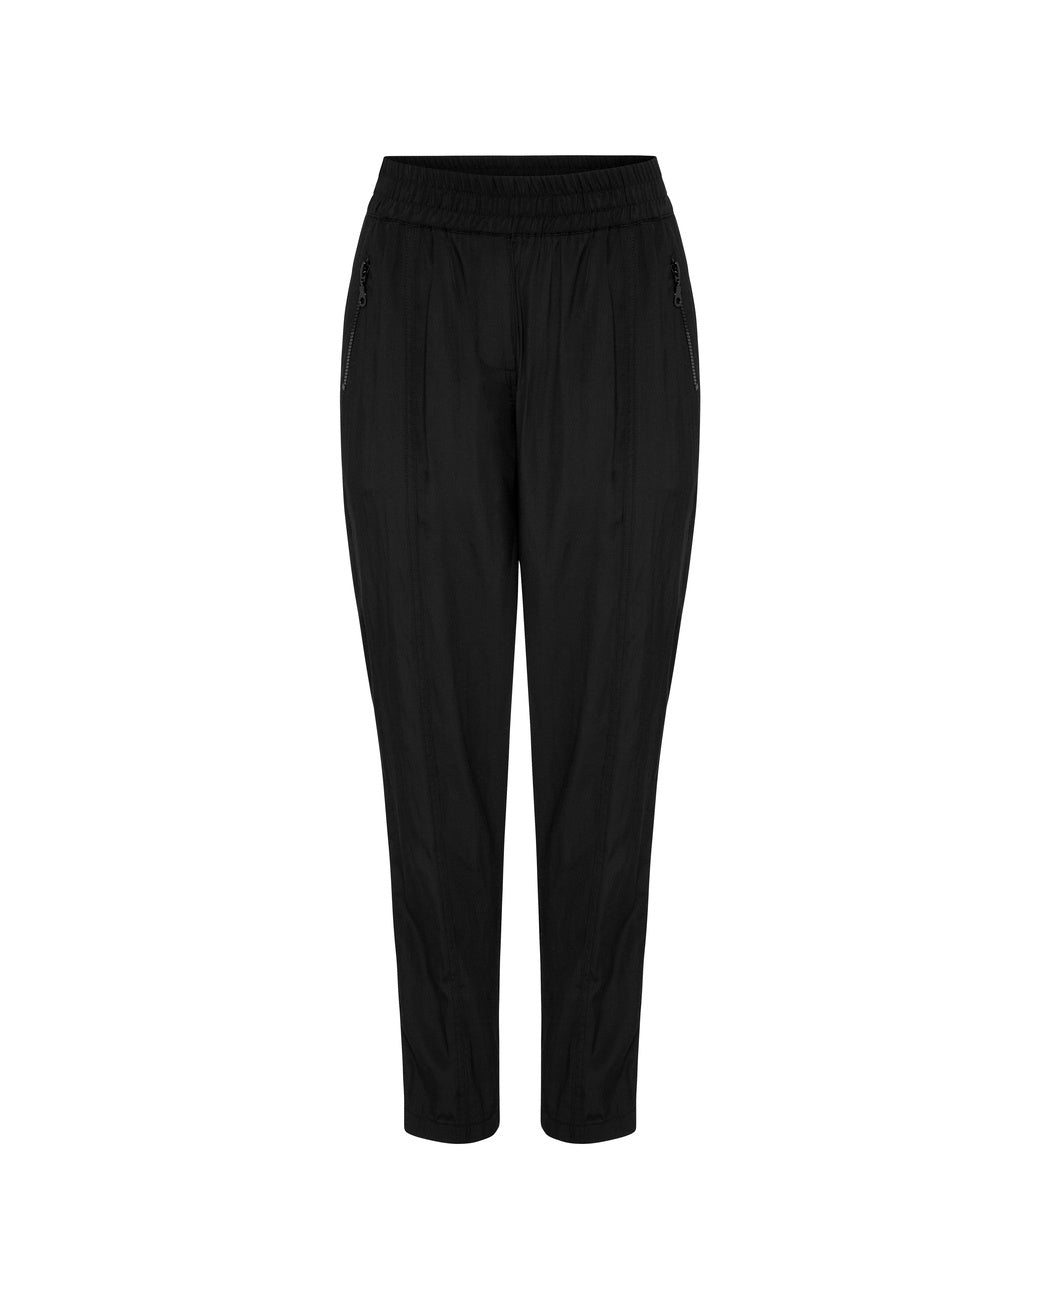 Mela Soft Zip Pant Black